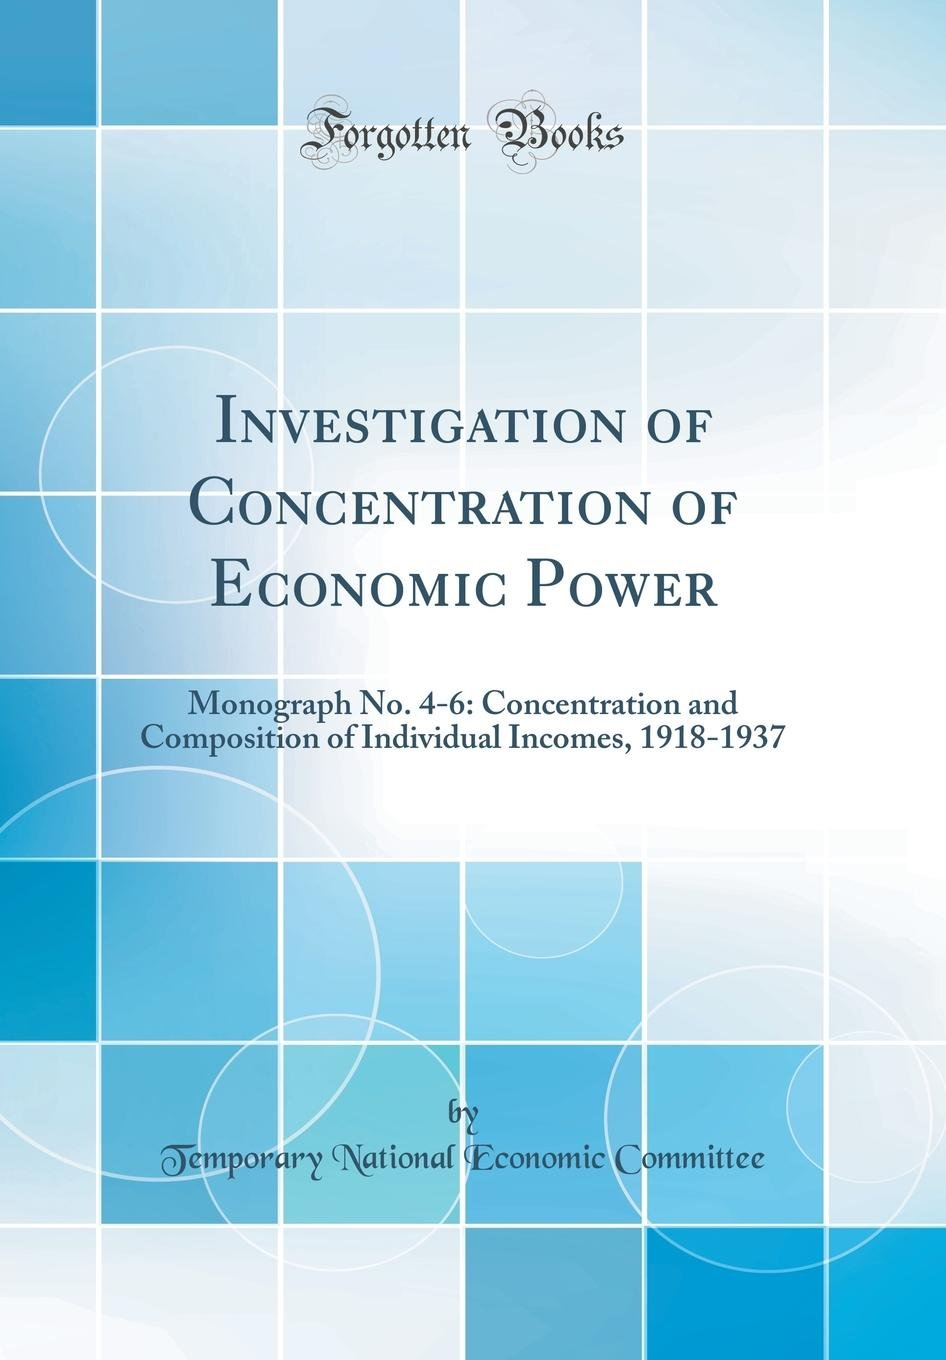 Download Investigation of Concentration of Economic Power: Monograph No. 4-6: Concentration and Composition of Individual Incomes, 1918-1937 (Classic Reprint) ebook